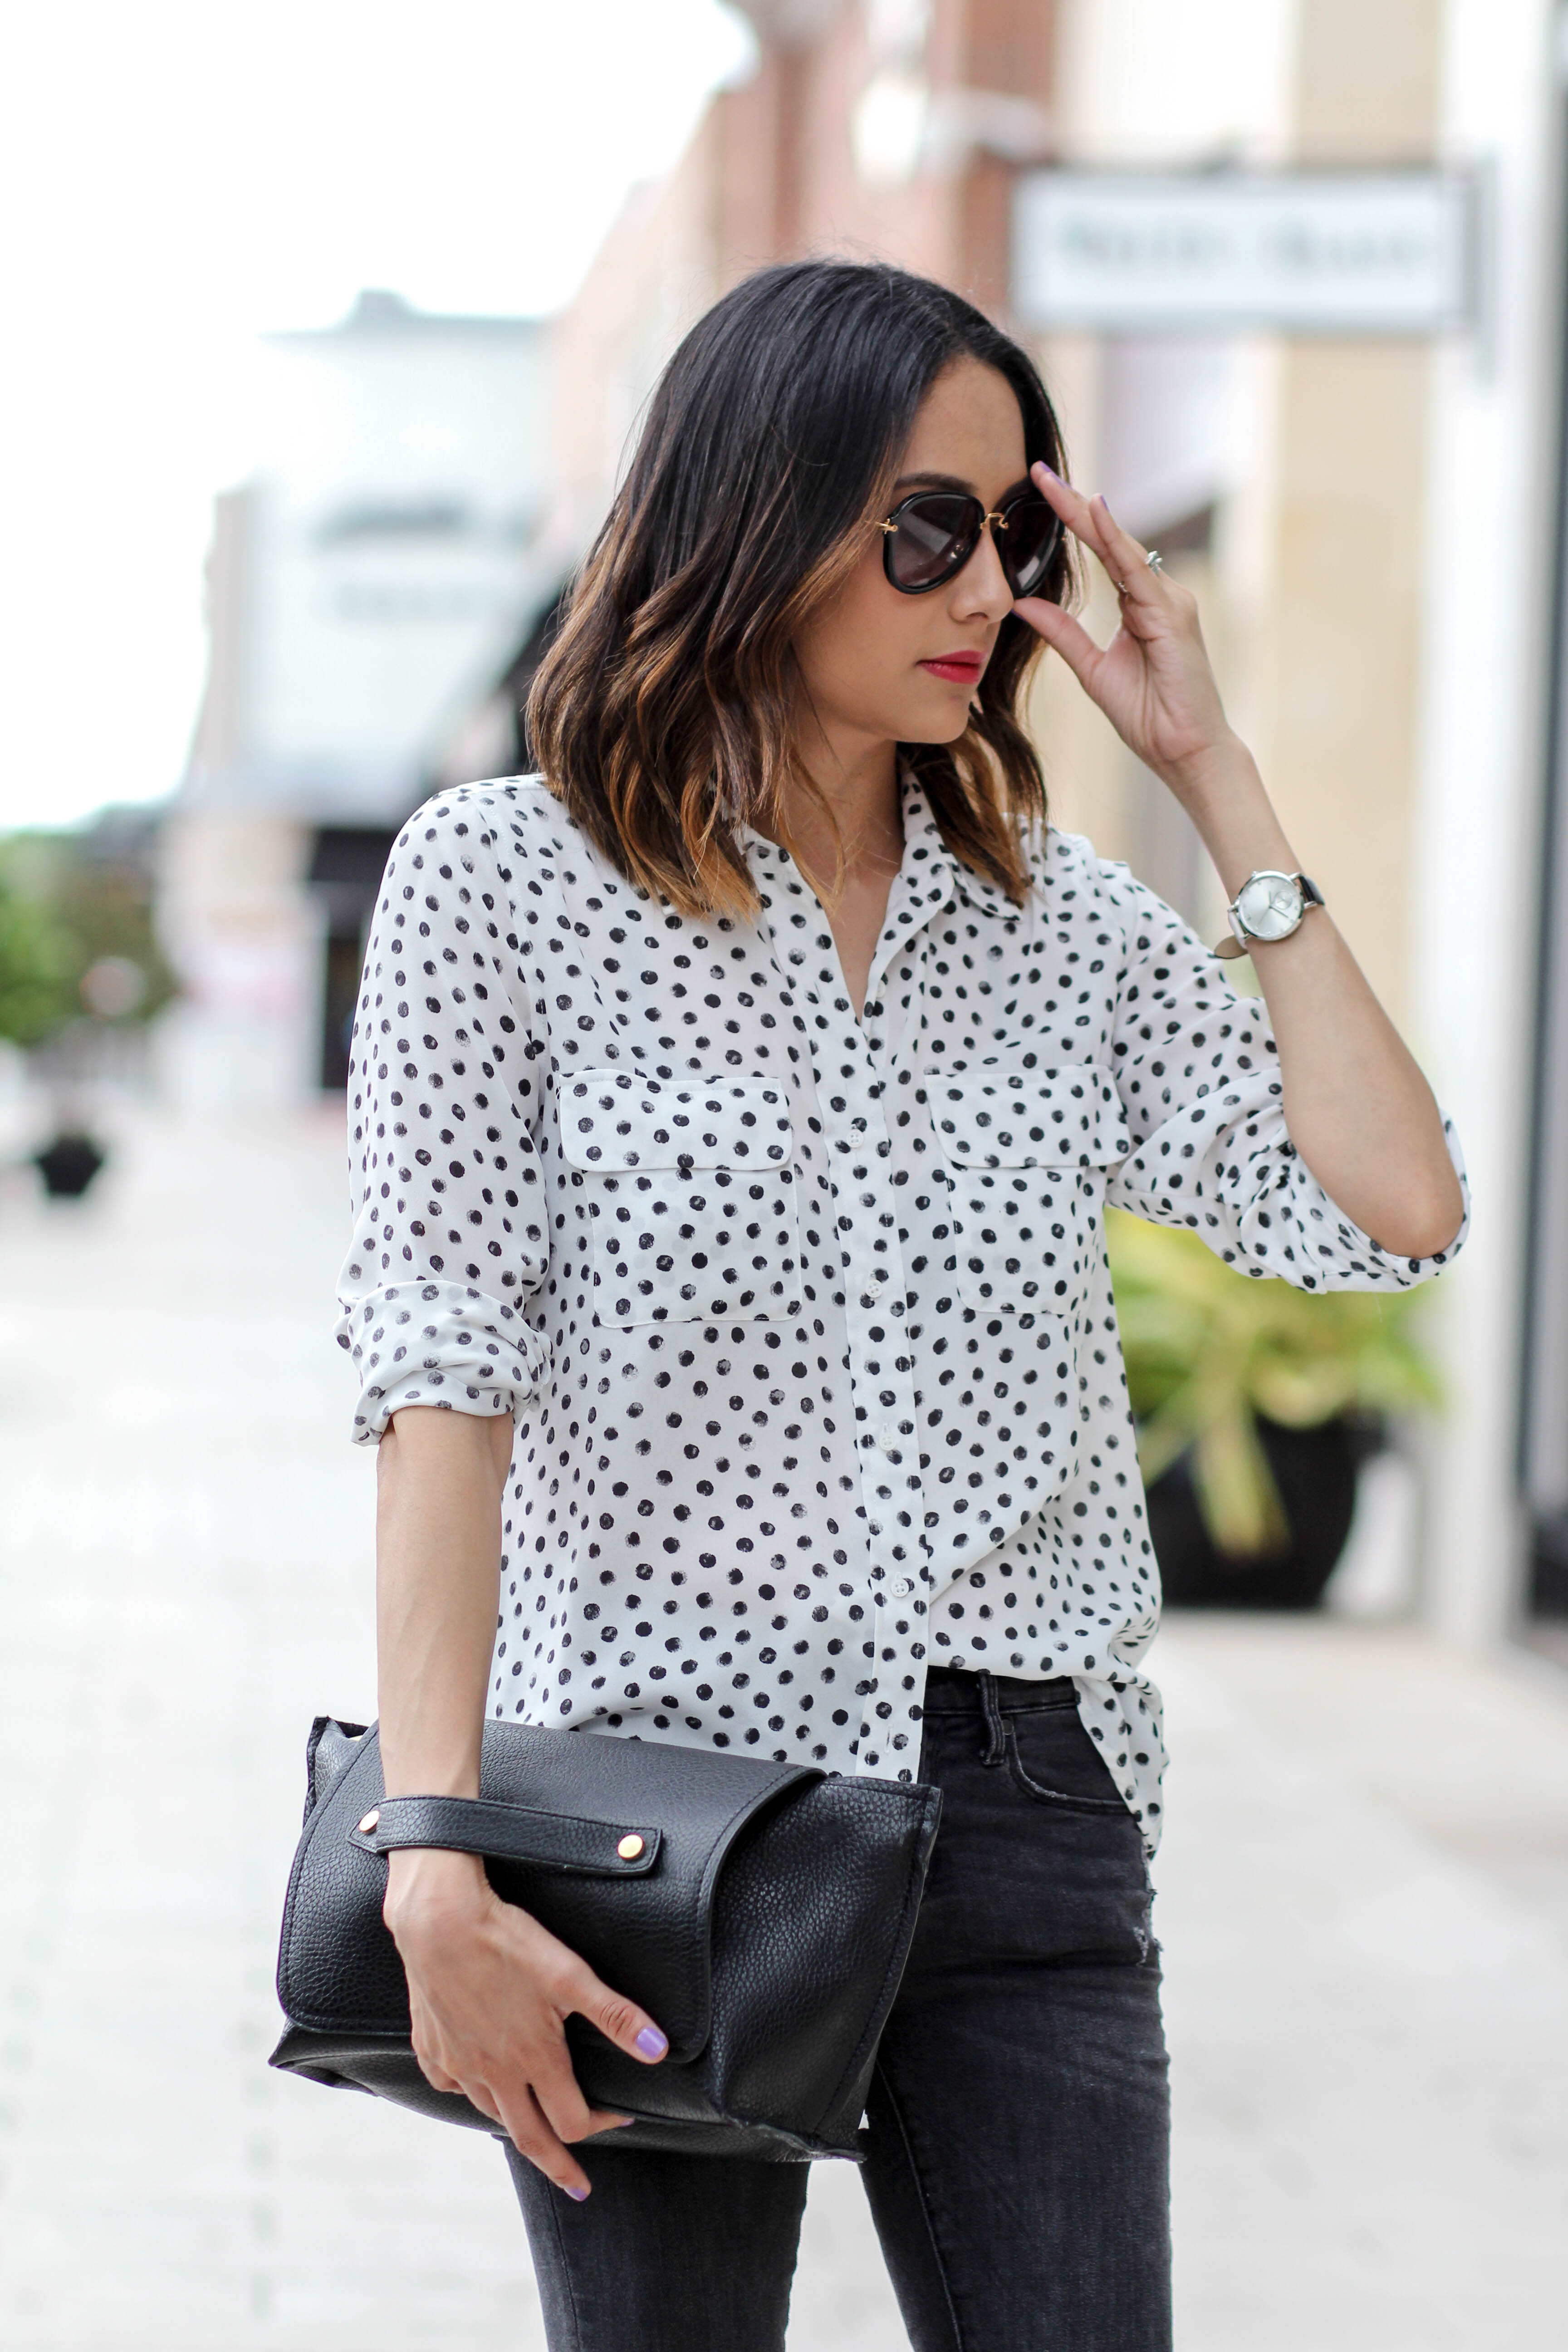 Polka Dotted Shirt | Ombre Hair | Aviator Sunglasses